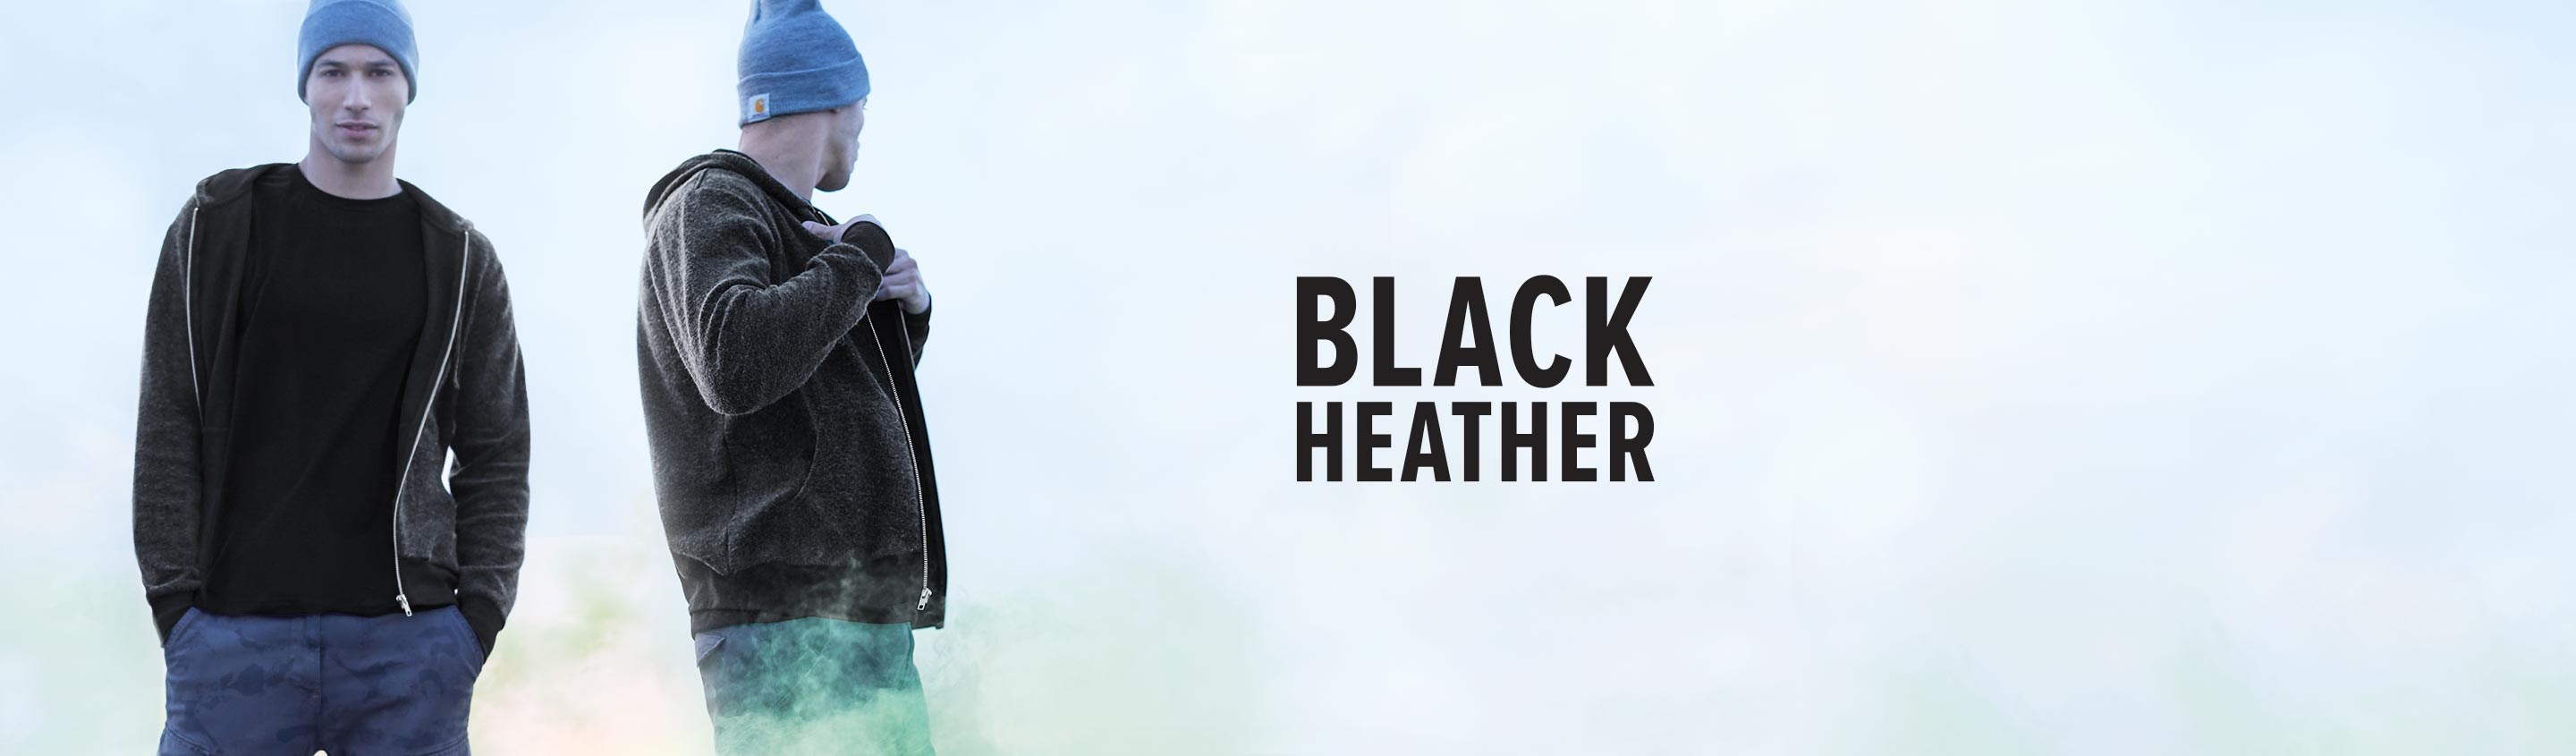 Black Heather Collection